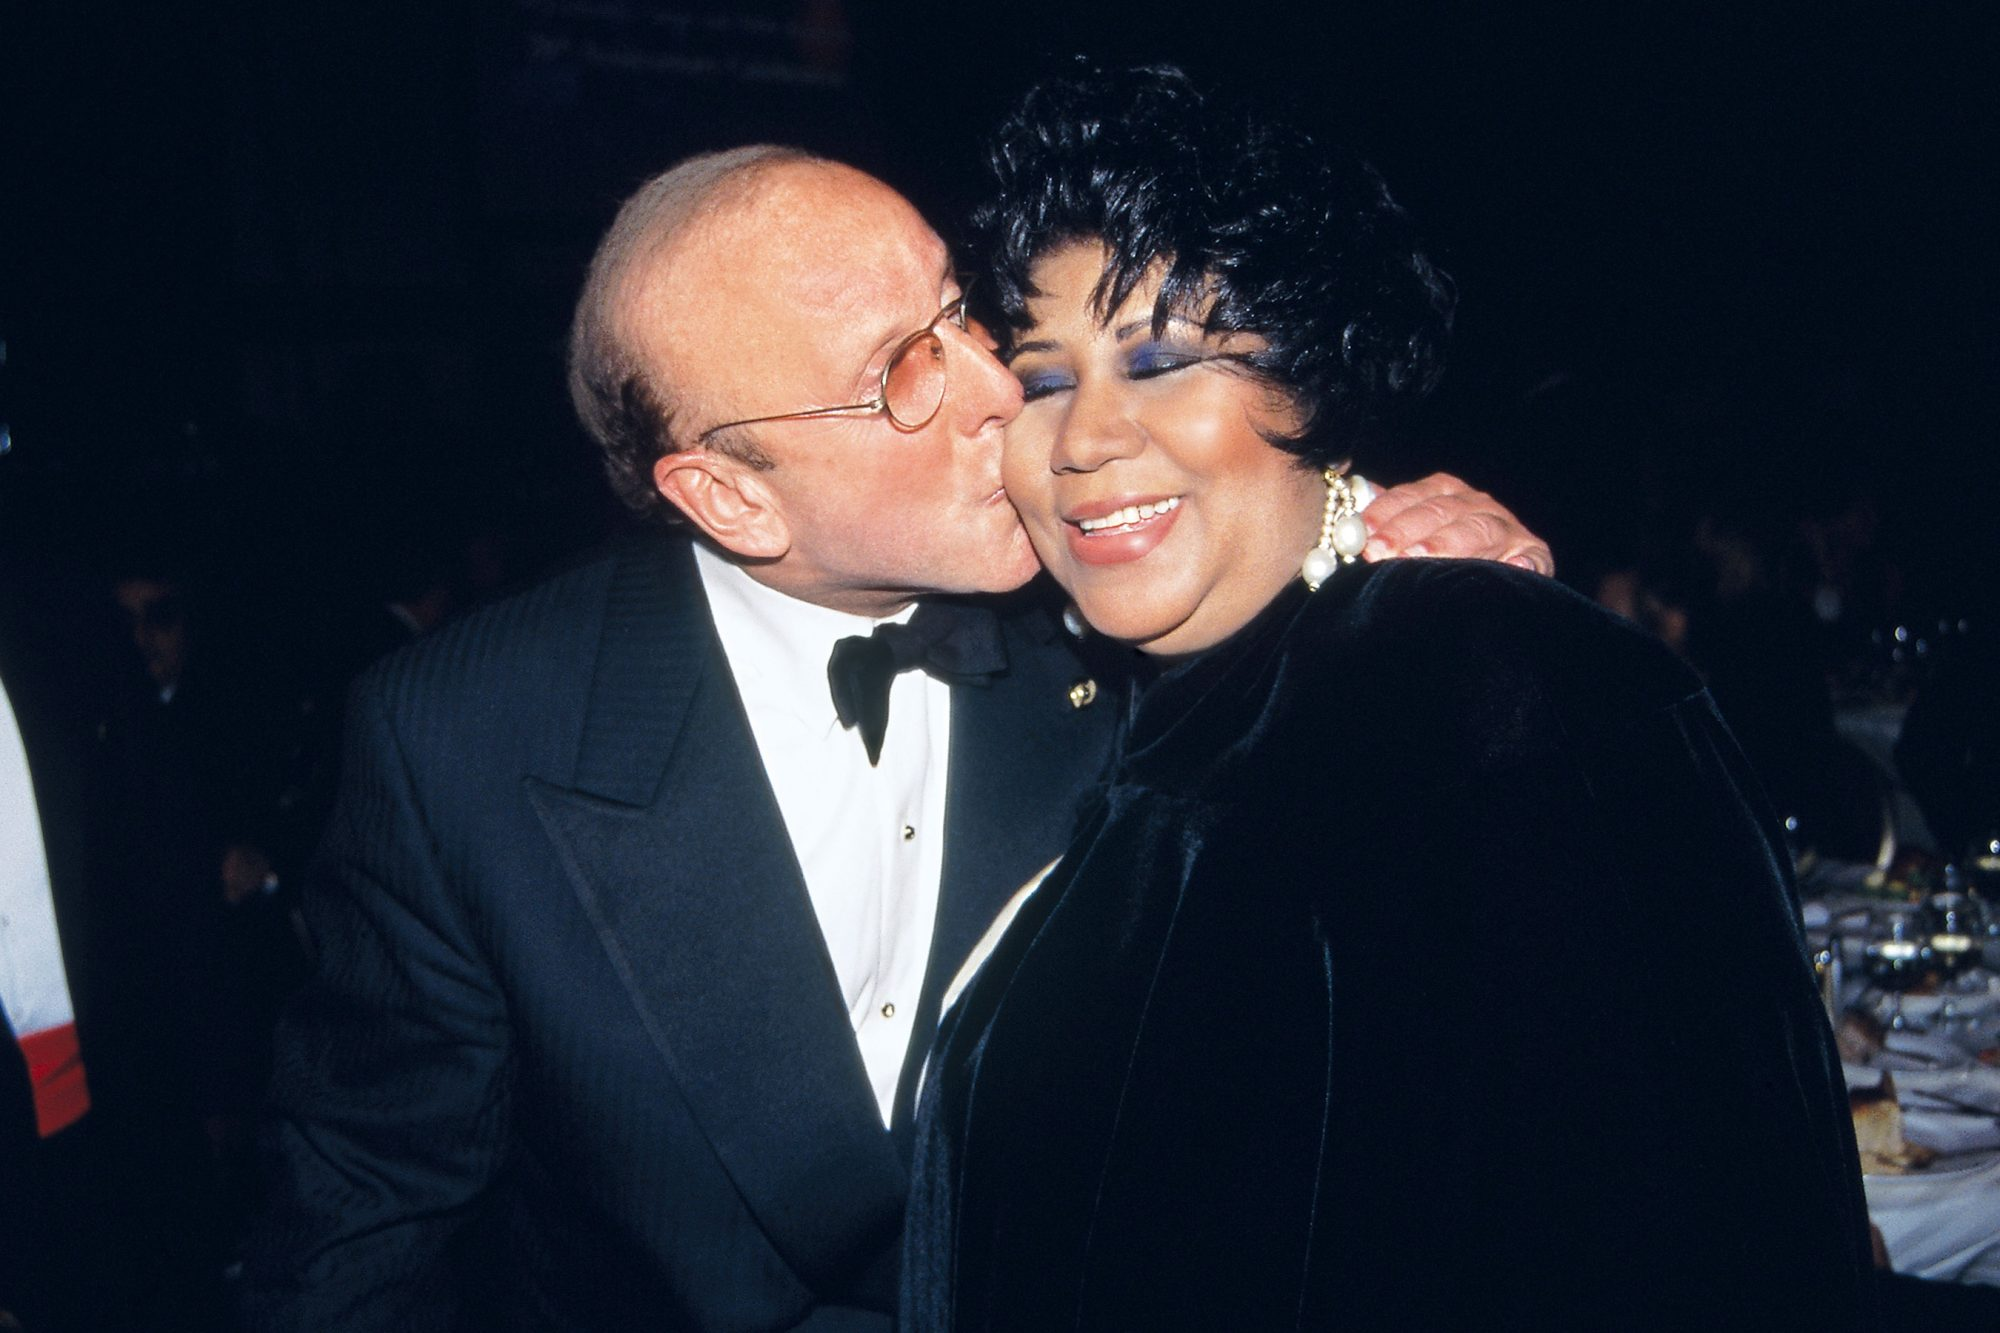 Clive Davis, Aretha Franklin T.J. Martell Foundation benefit in honor of Clive Davis Grand Ballroom of the New York Hilton, NYC September 14, 1995